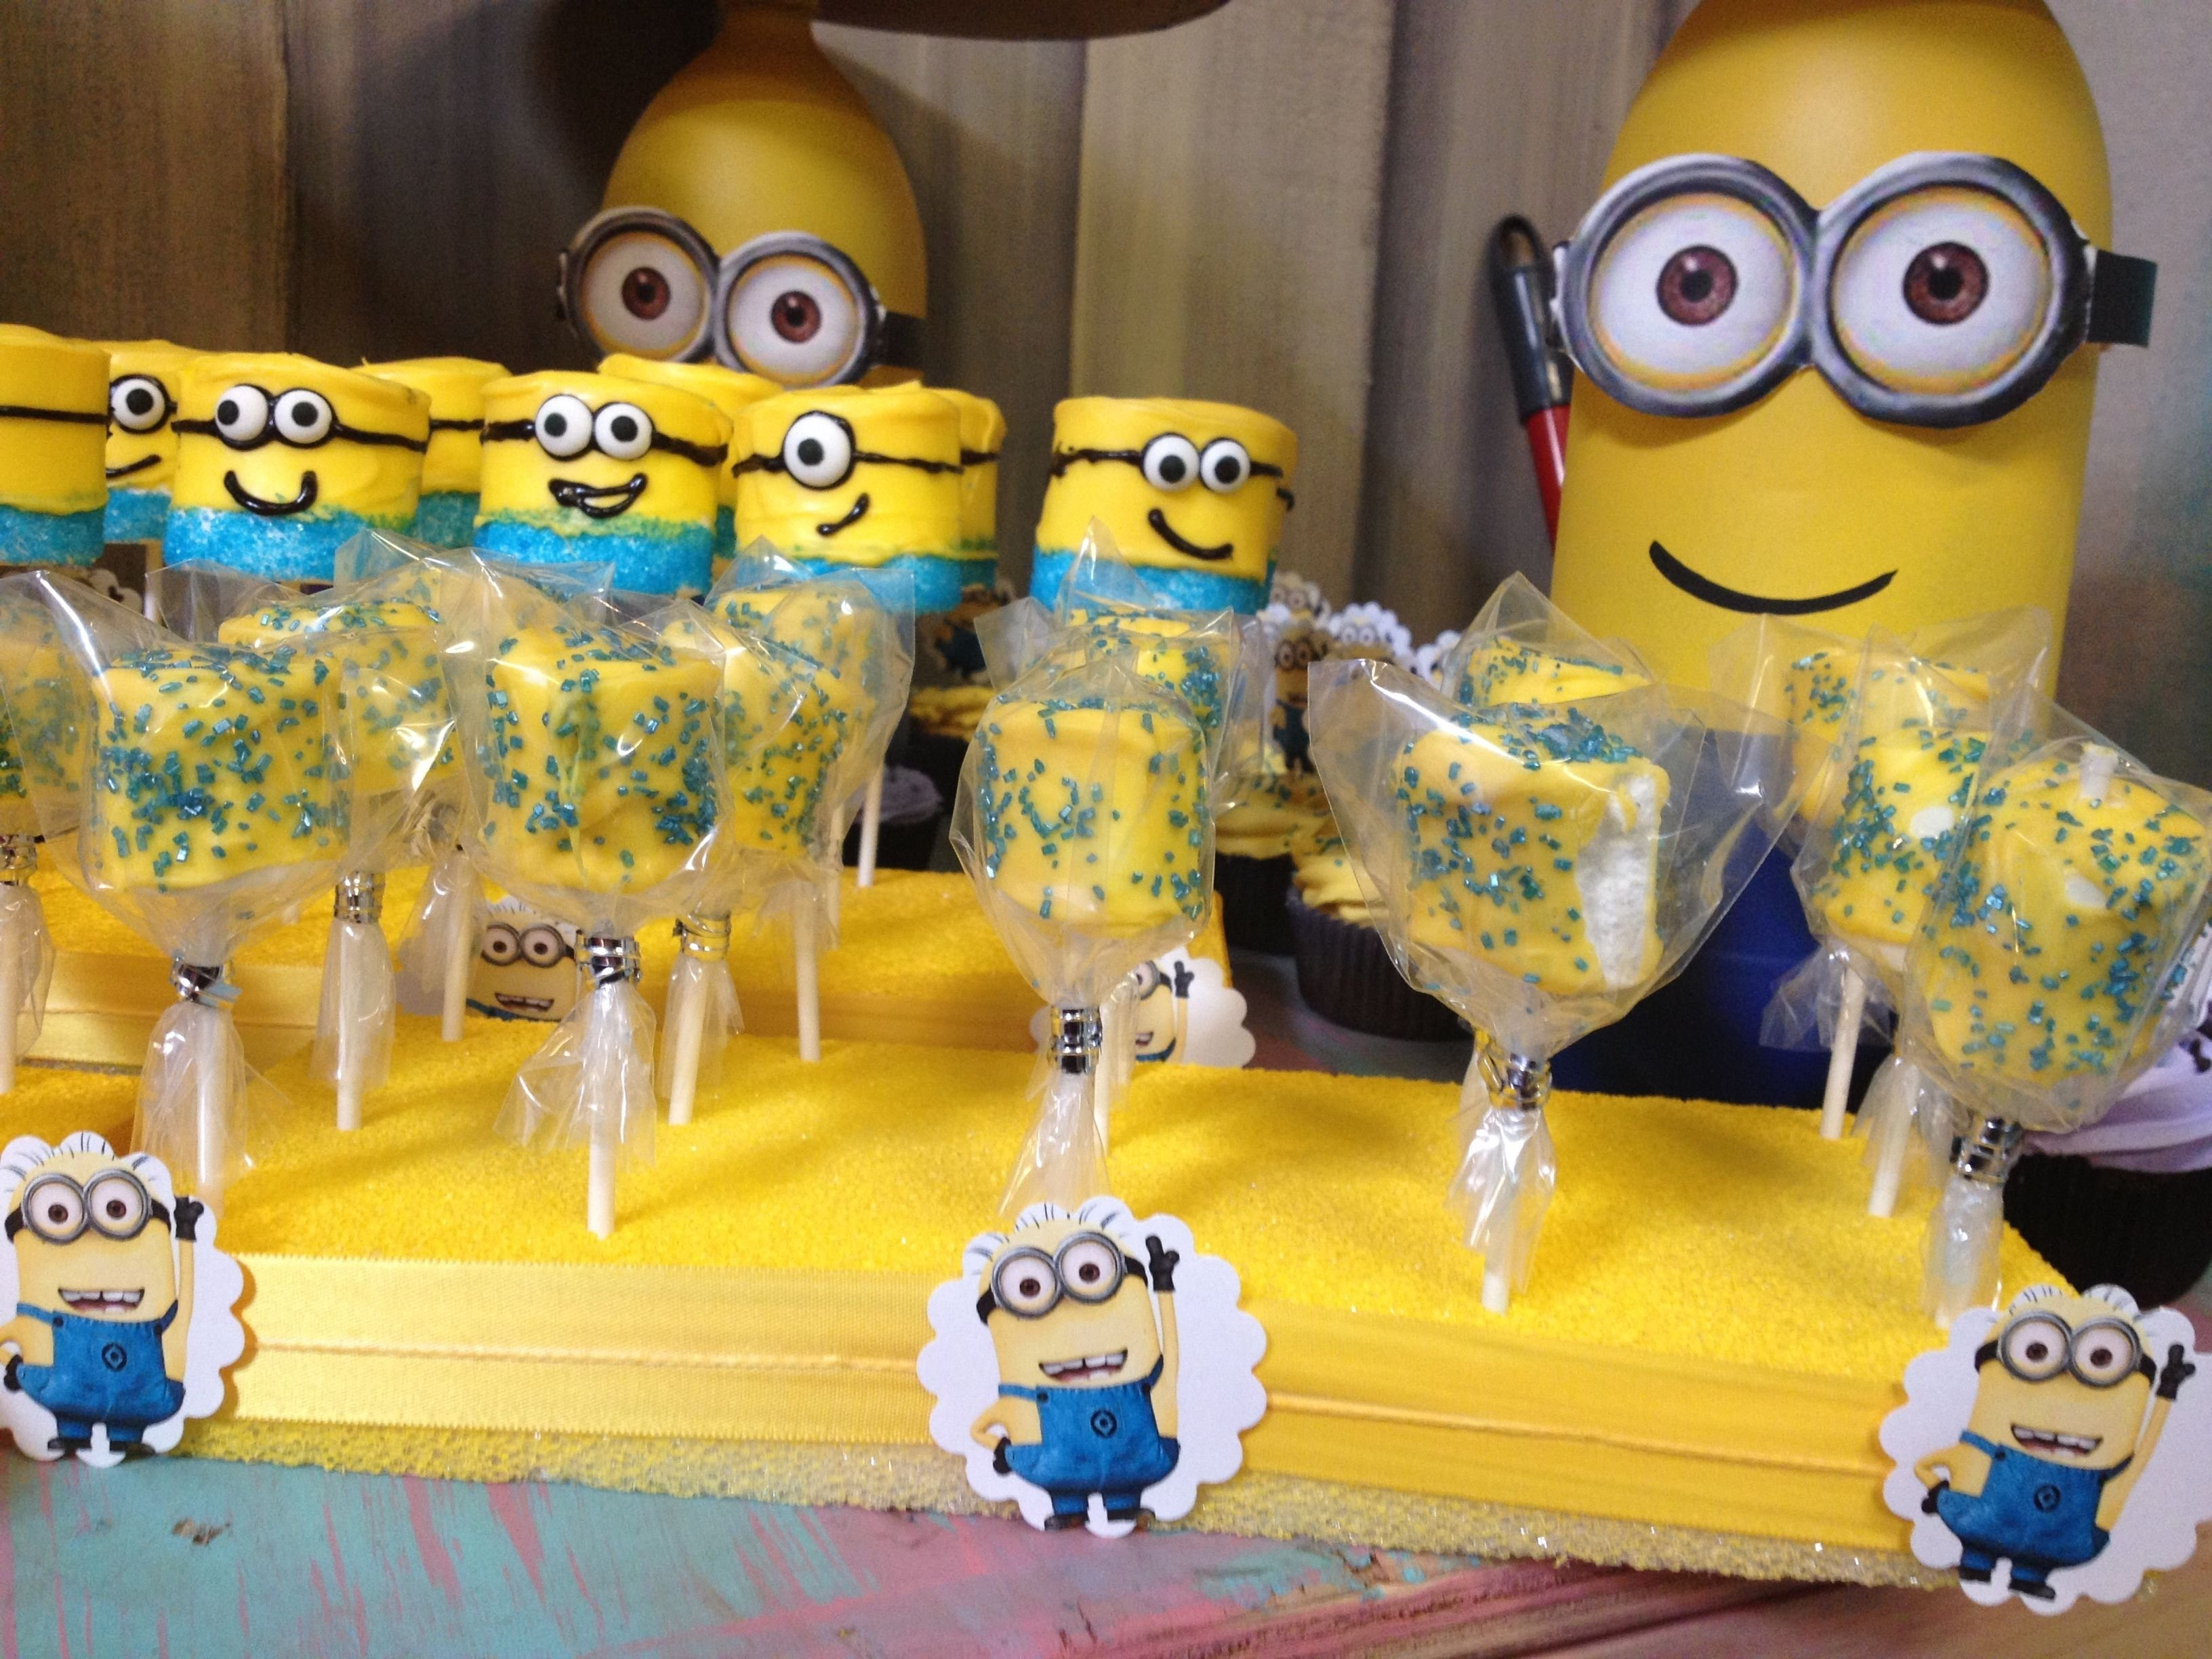 10 Nice Despicable Me 2 Birthday Party Ideas small large marshmallow pops despicable me 2 birthday party 2020